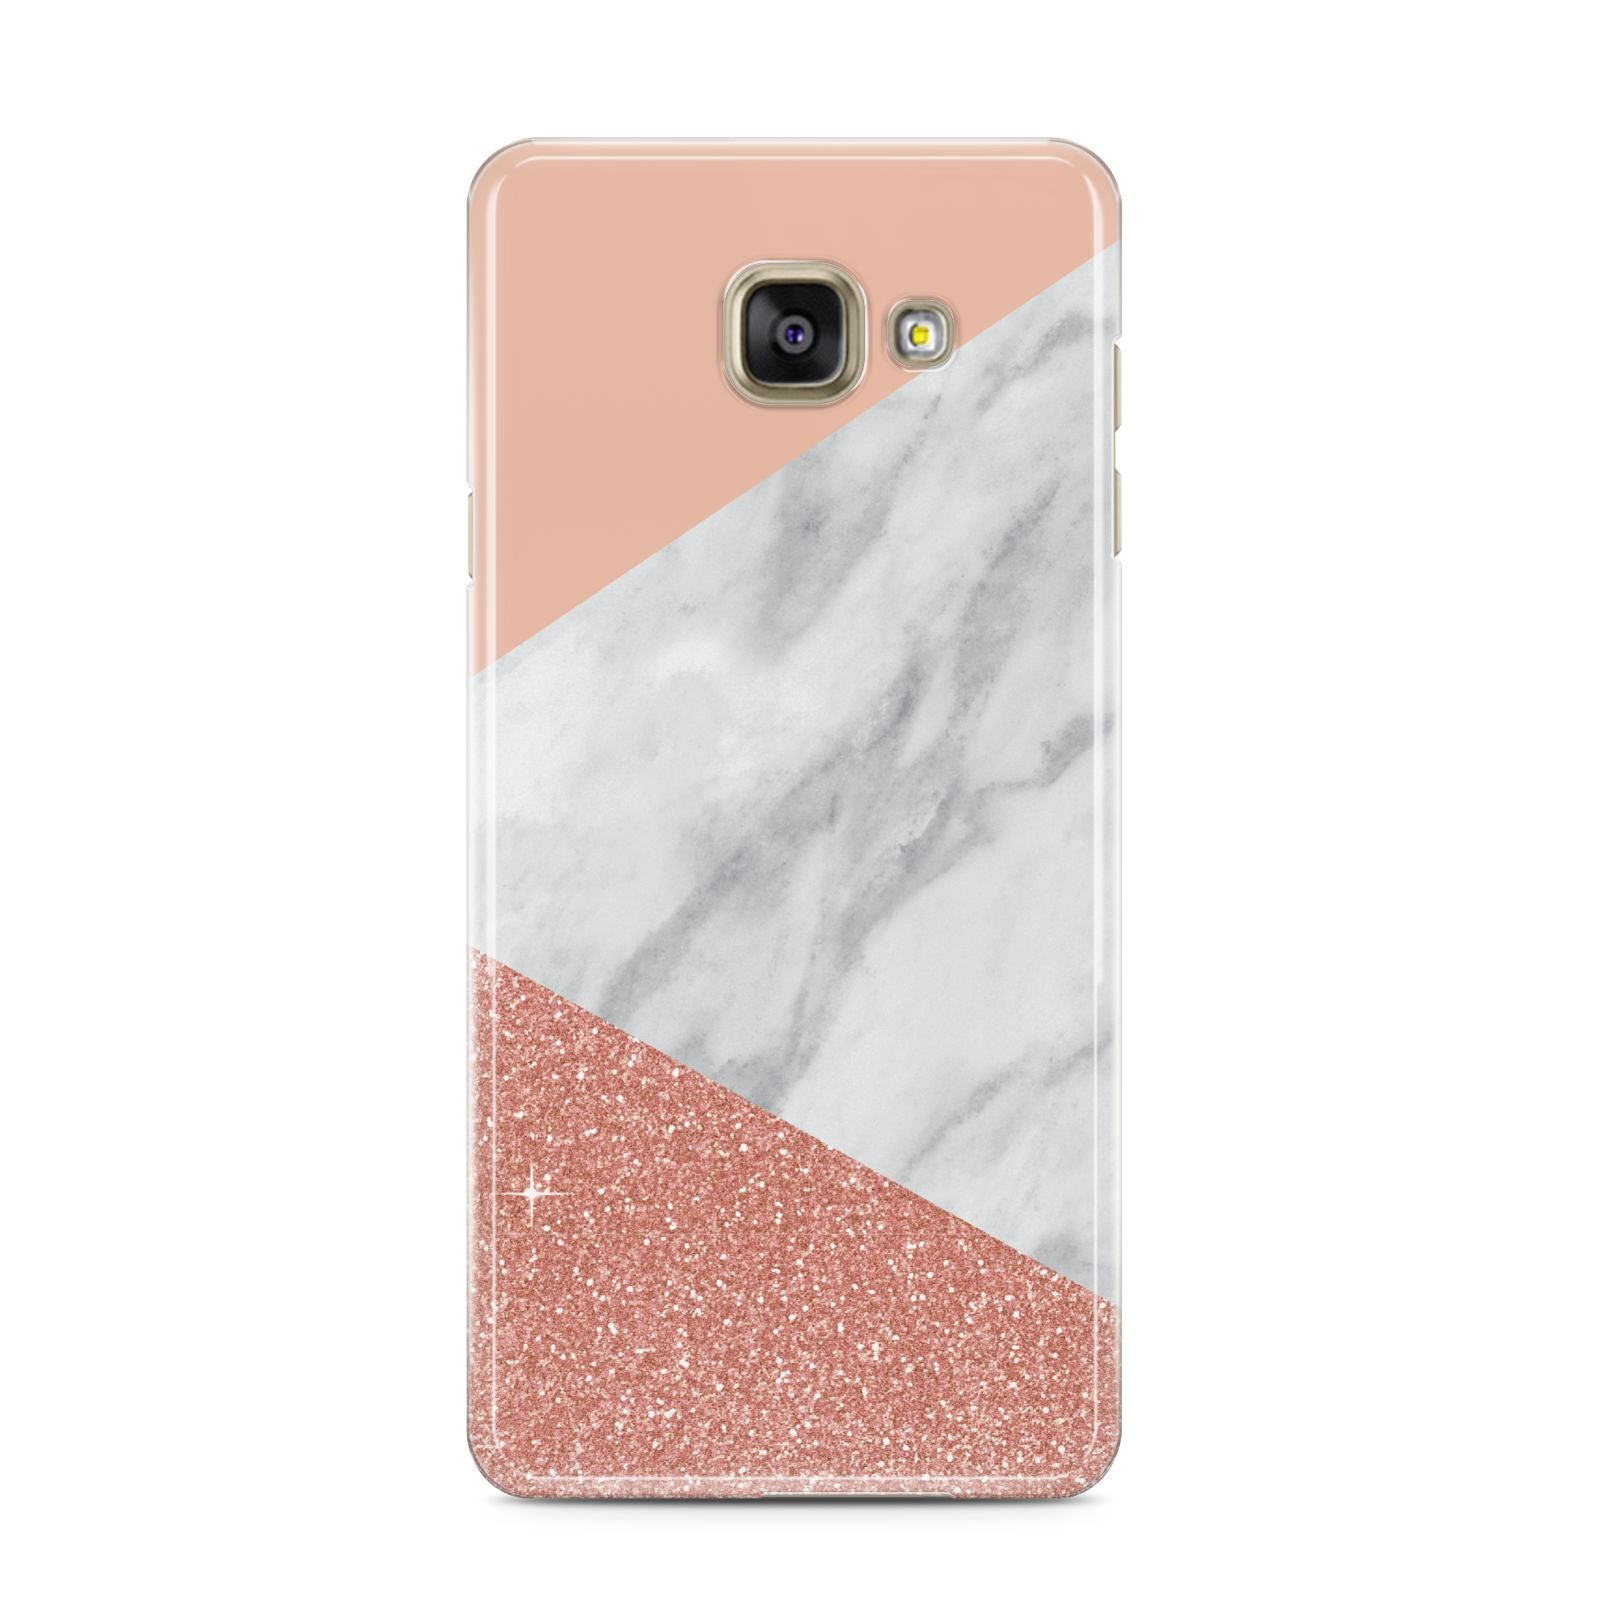 Marble White Rose Gold Samsung Galaxy A3 2016 Case on gold phone